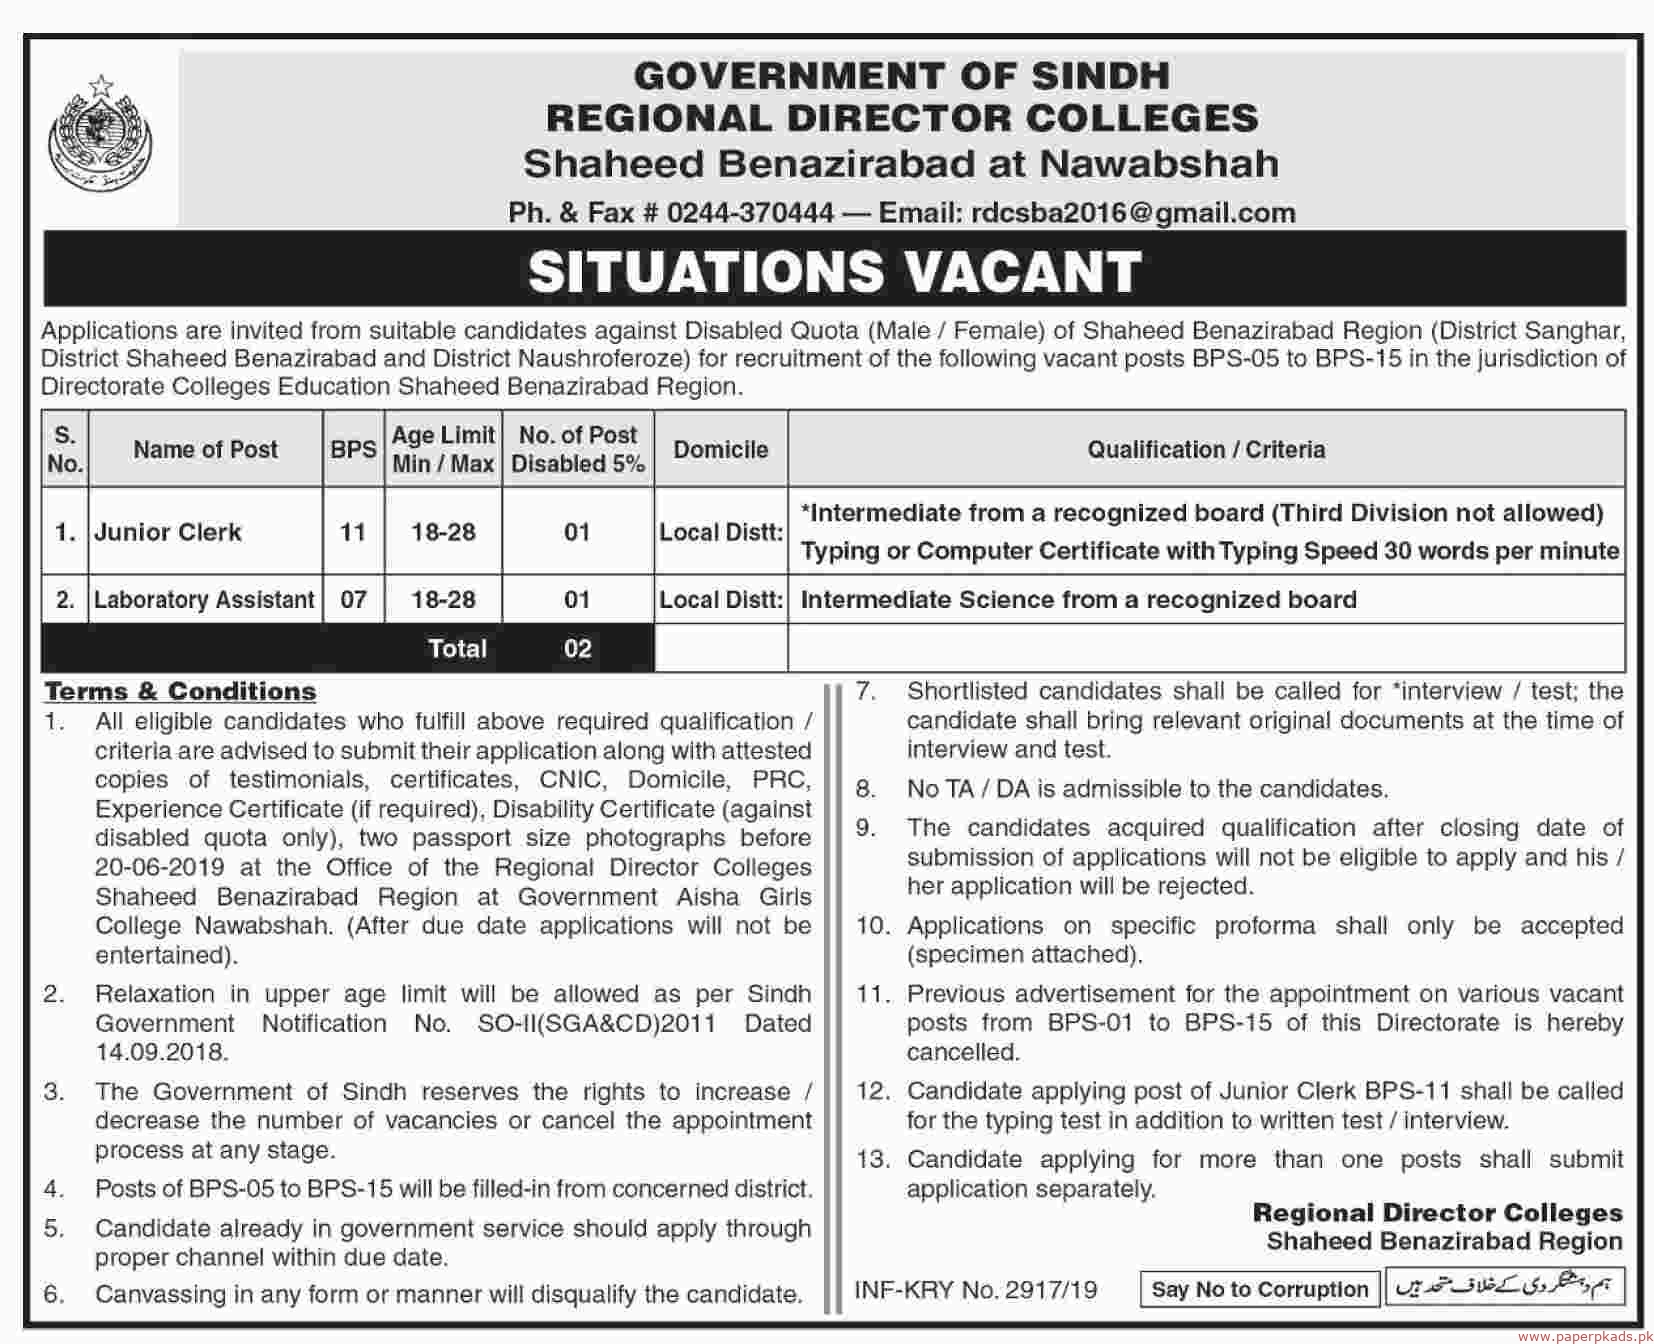 Government of Sindh - Regional Director Colleges Jobs 2019 Latest